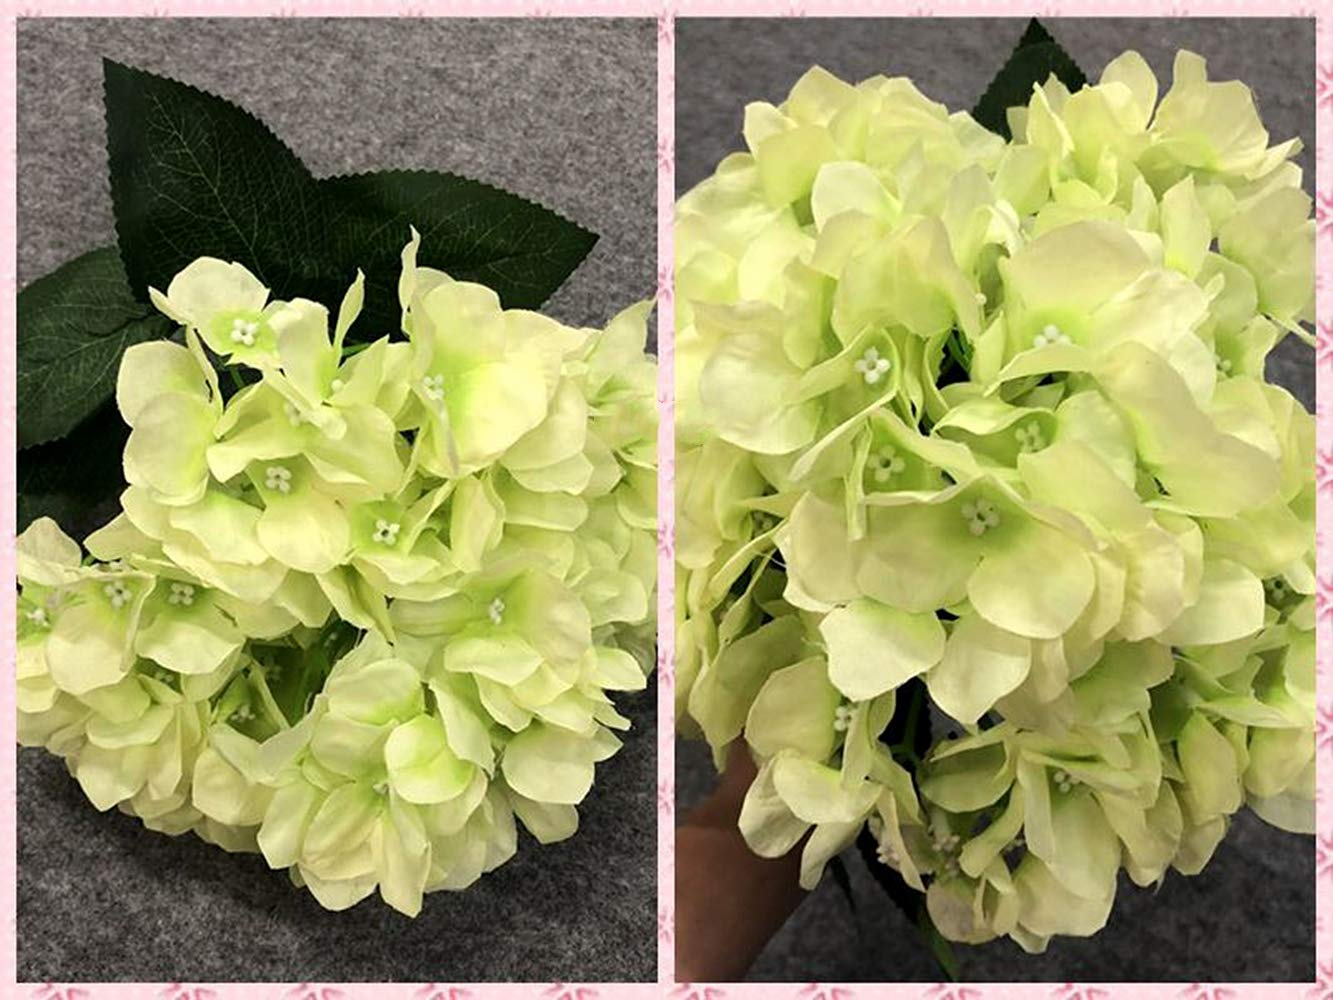 Homyu Artificial Hydrangea Flowers 5 Big Heads Bouquet Beautiful Flowers for Office Home Party Decoration Champagne